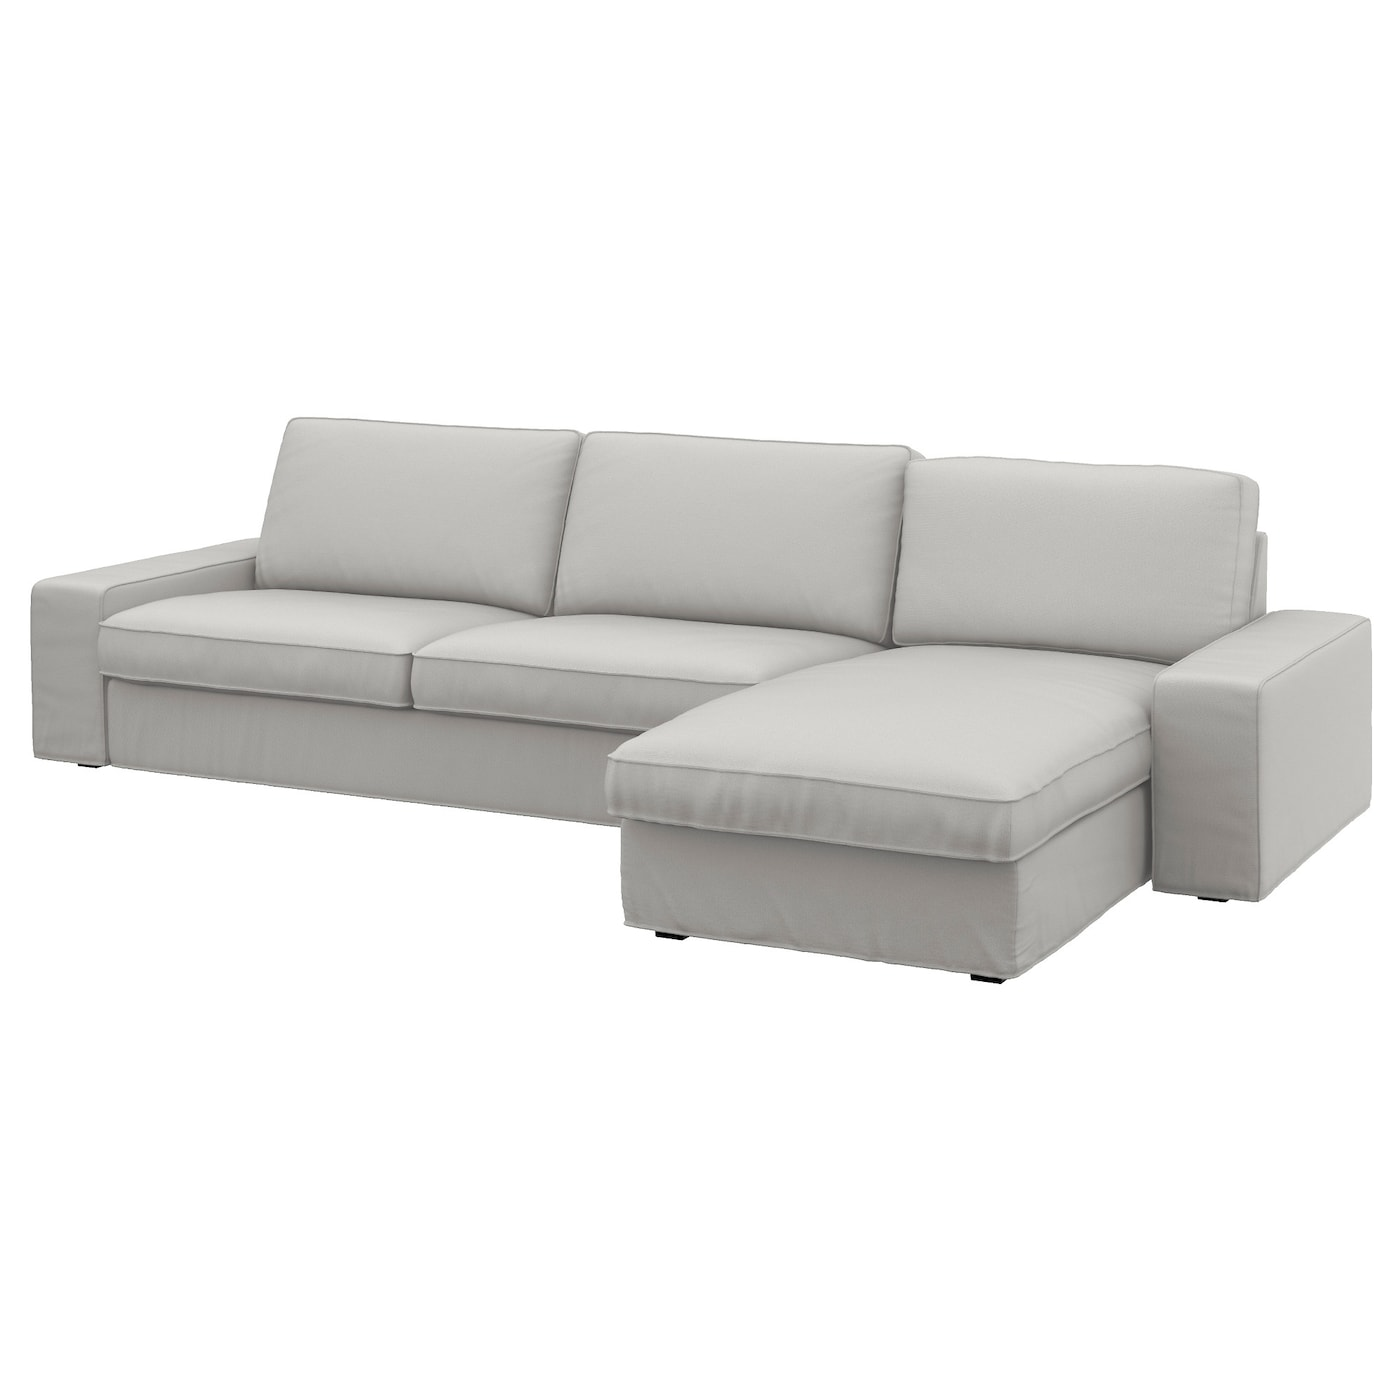 Kivik 4 seat sofa with chaise longue ramna light grey ikea - Sofa rinconera con chaise longue ...